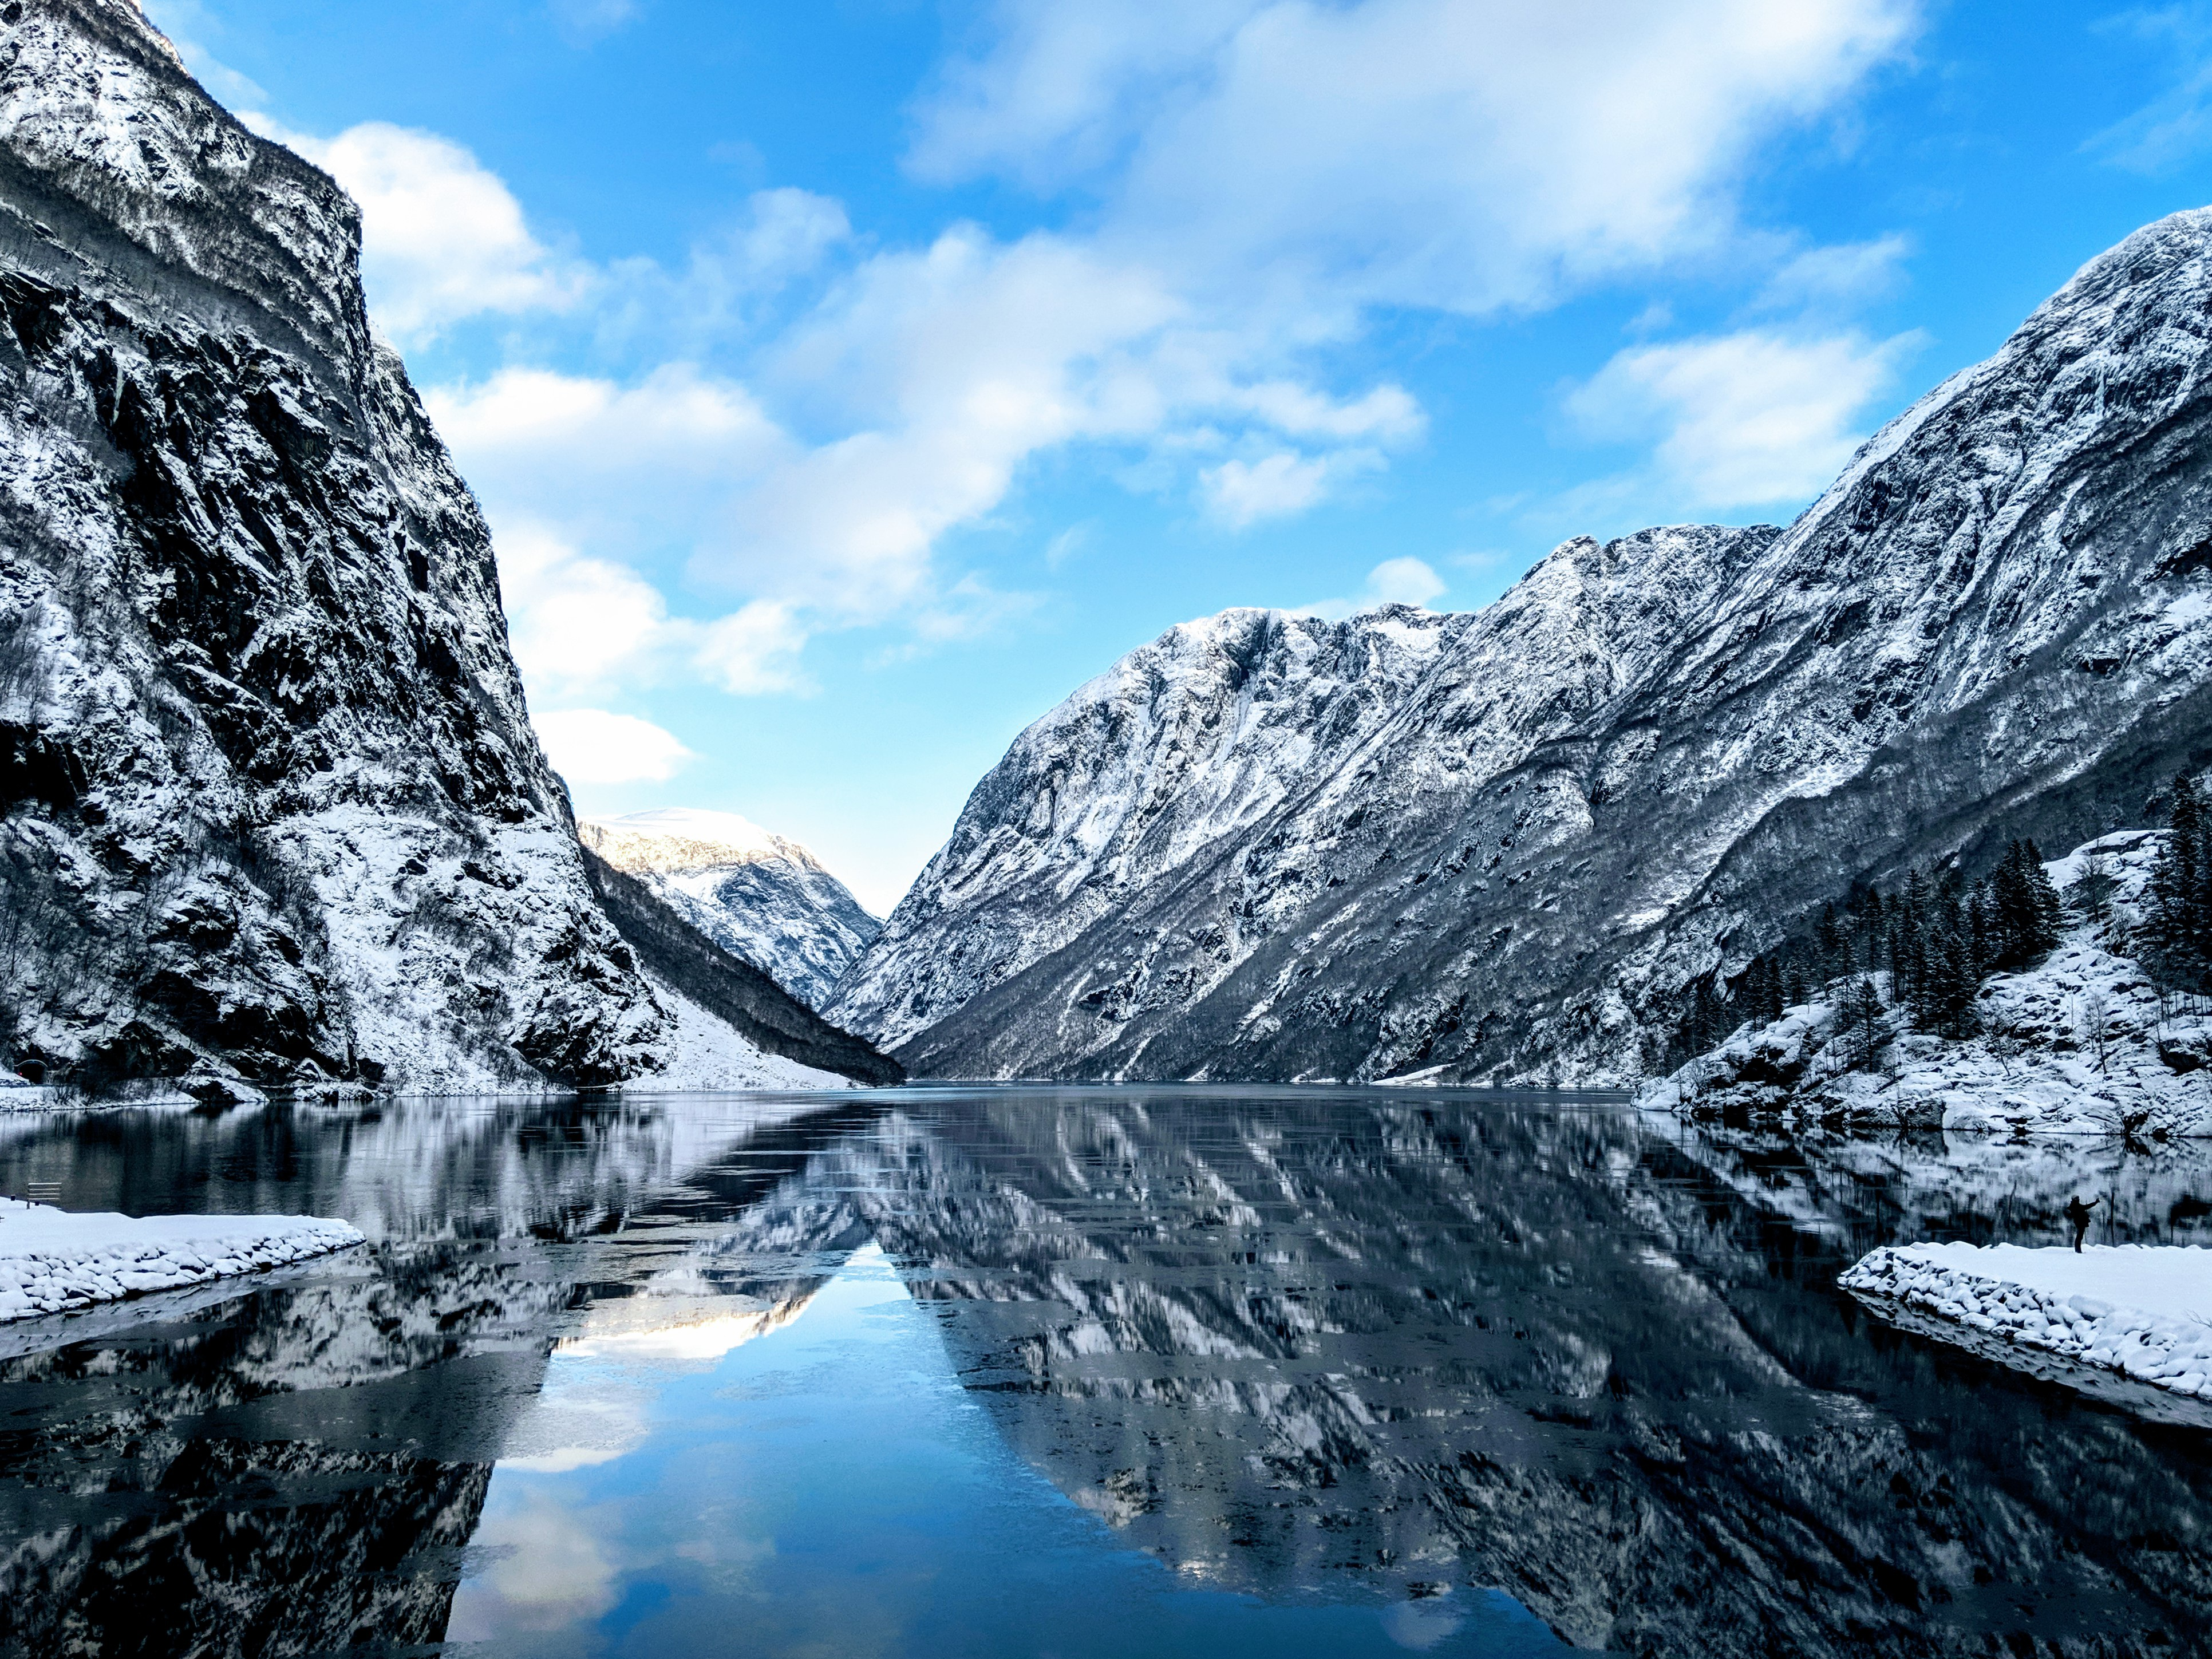 Norway River Between Mountains Wallpaper Id 3295